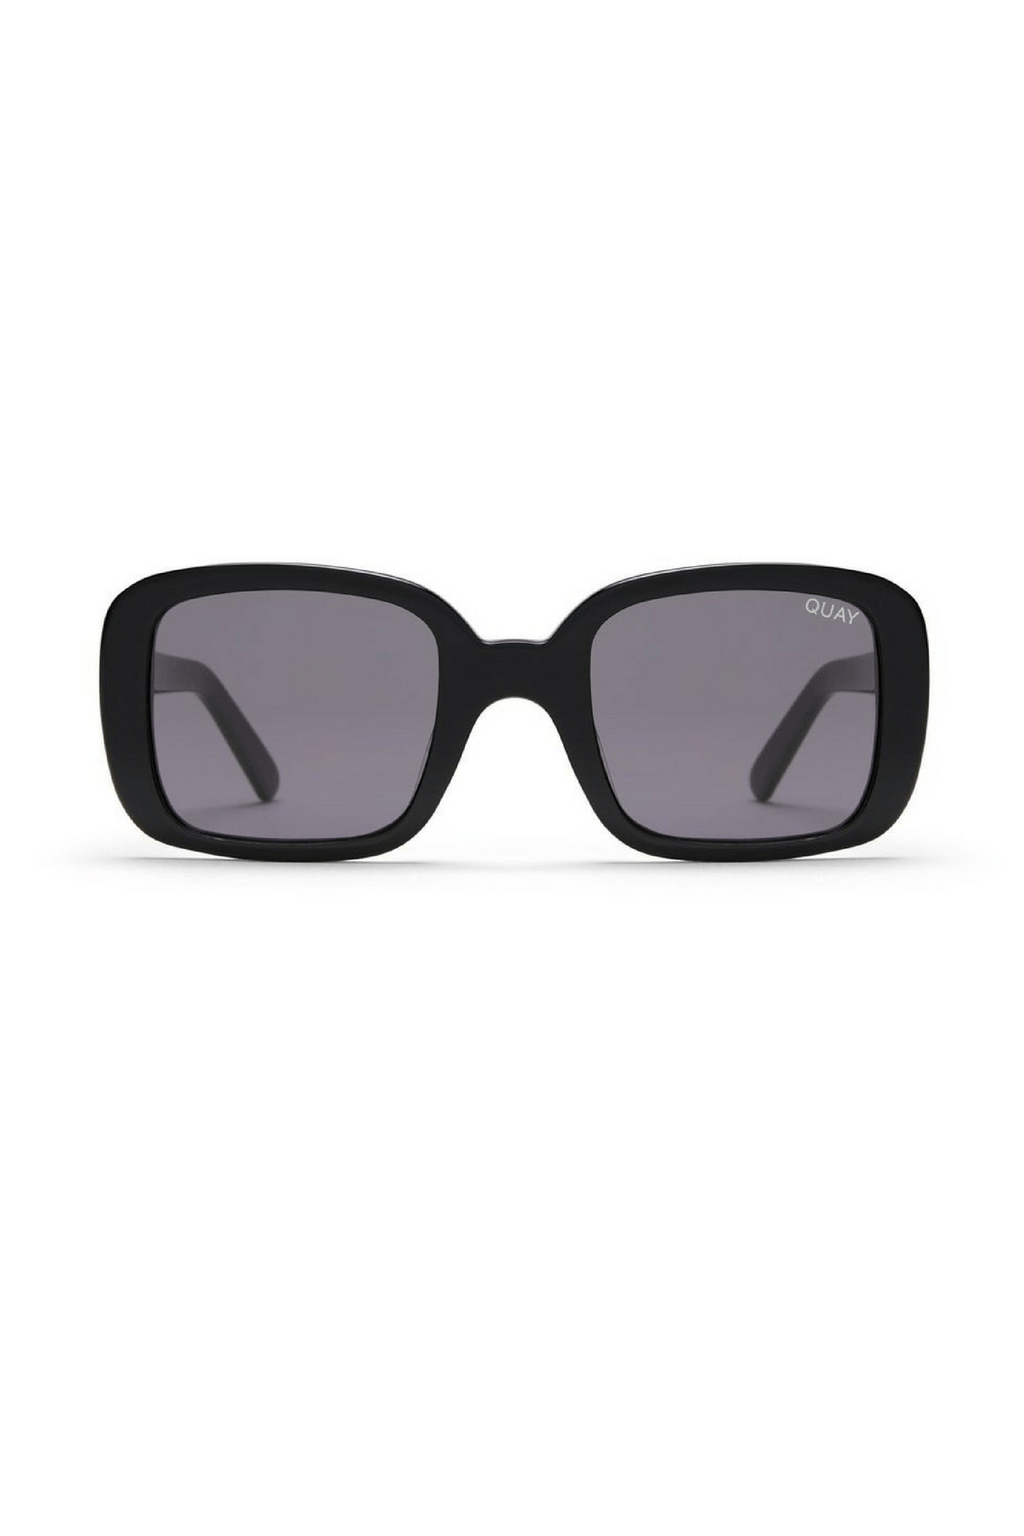 Quay x Kylie 20's Sunglasses in Black/Smoke - QUAY AUSTRALIA